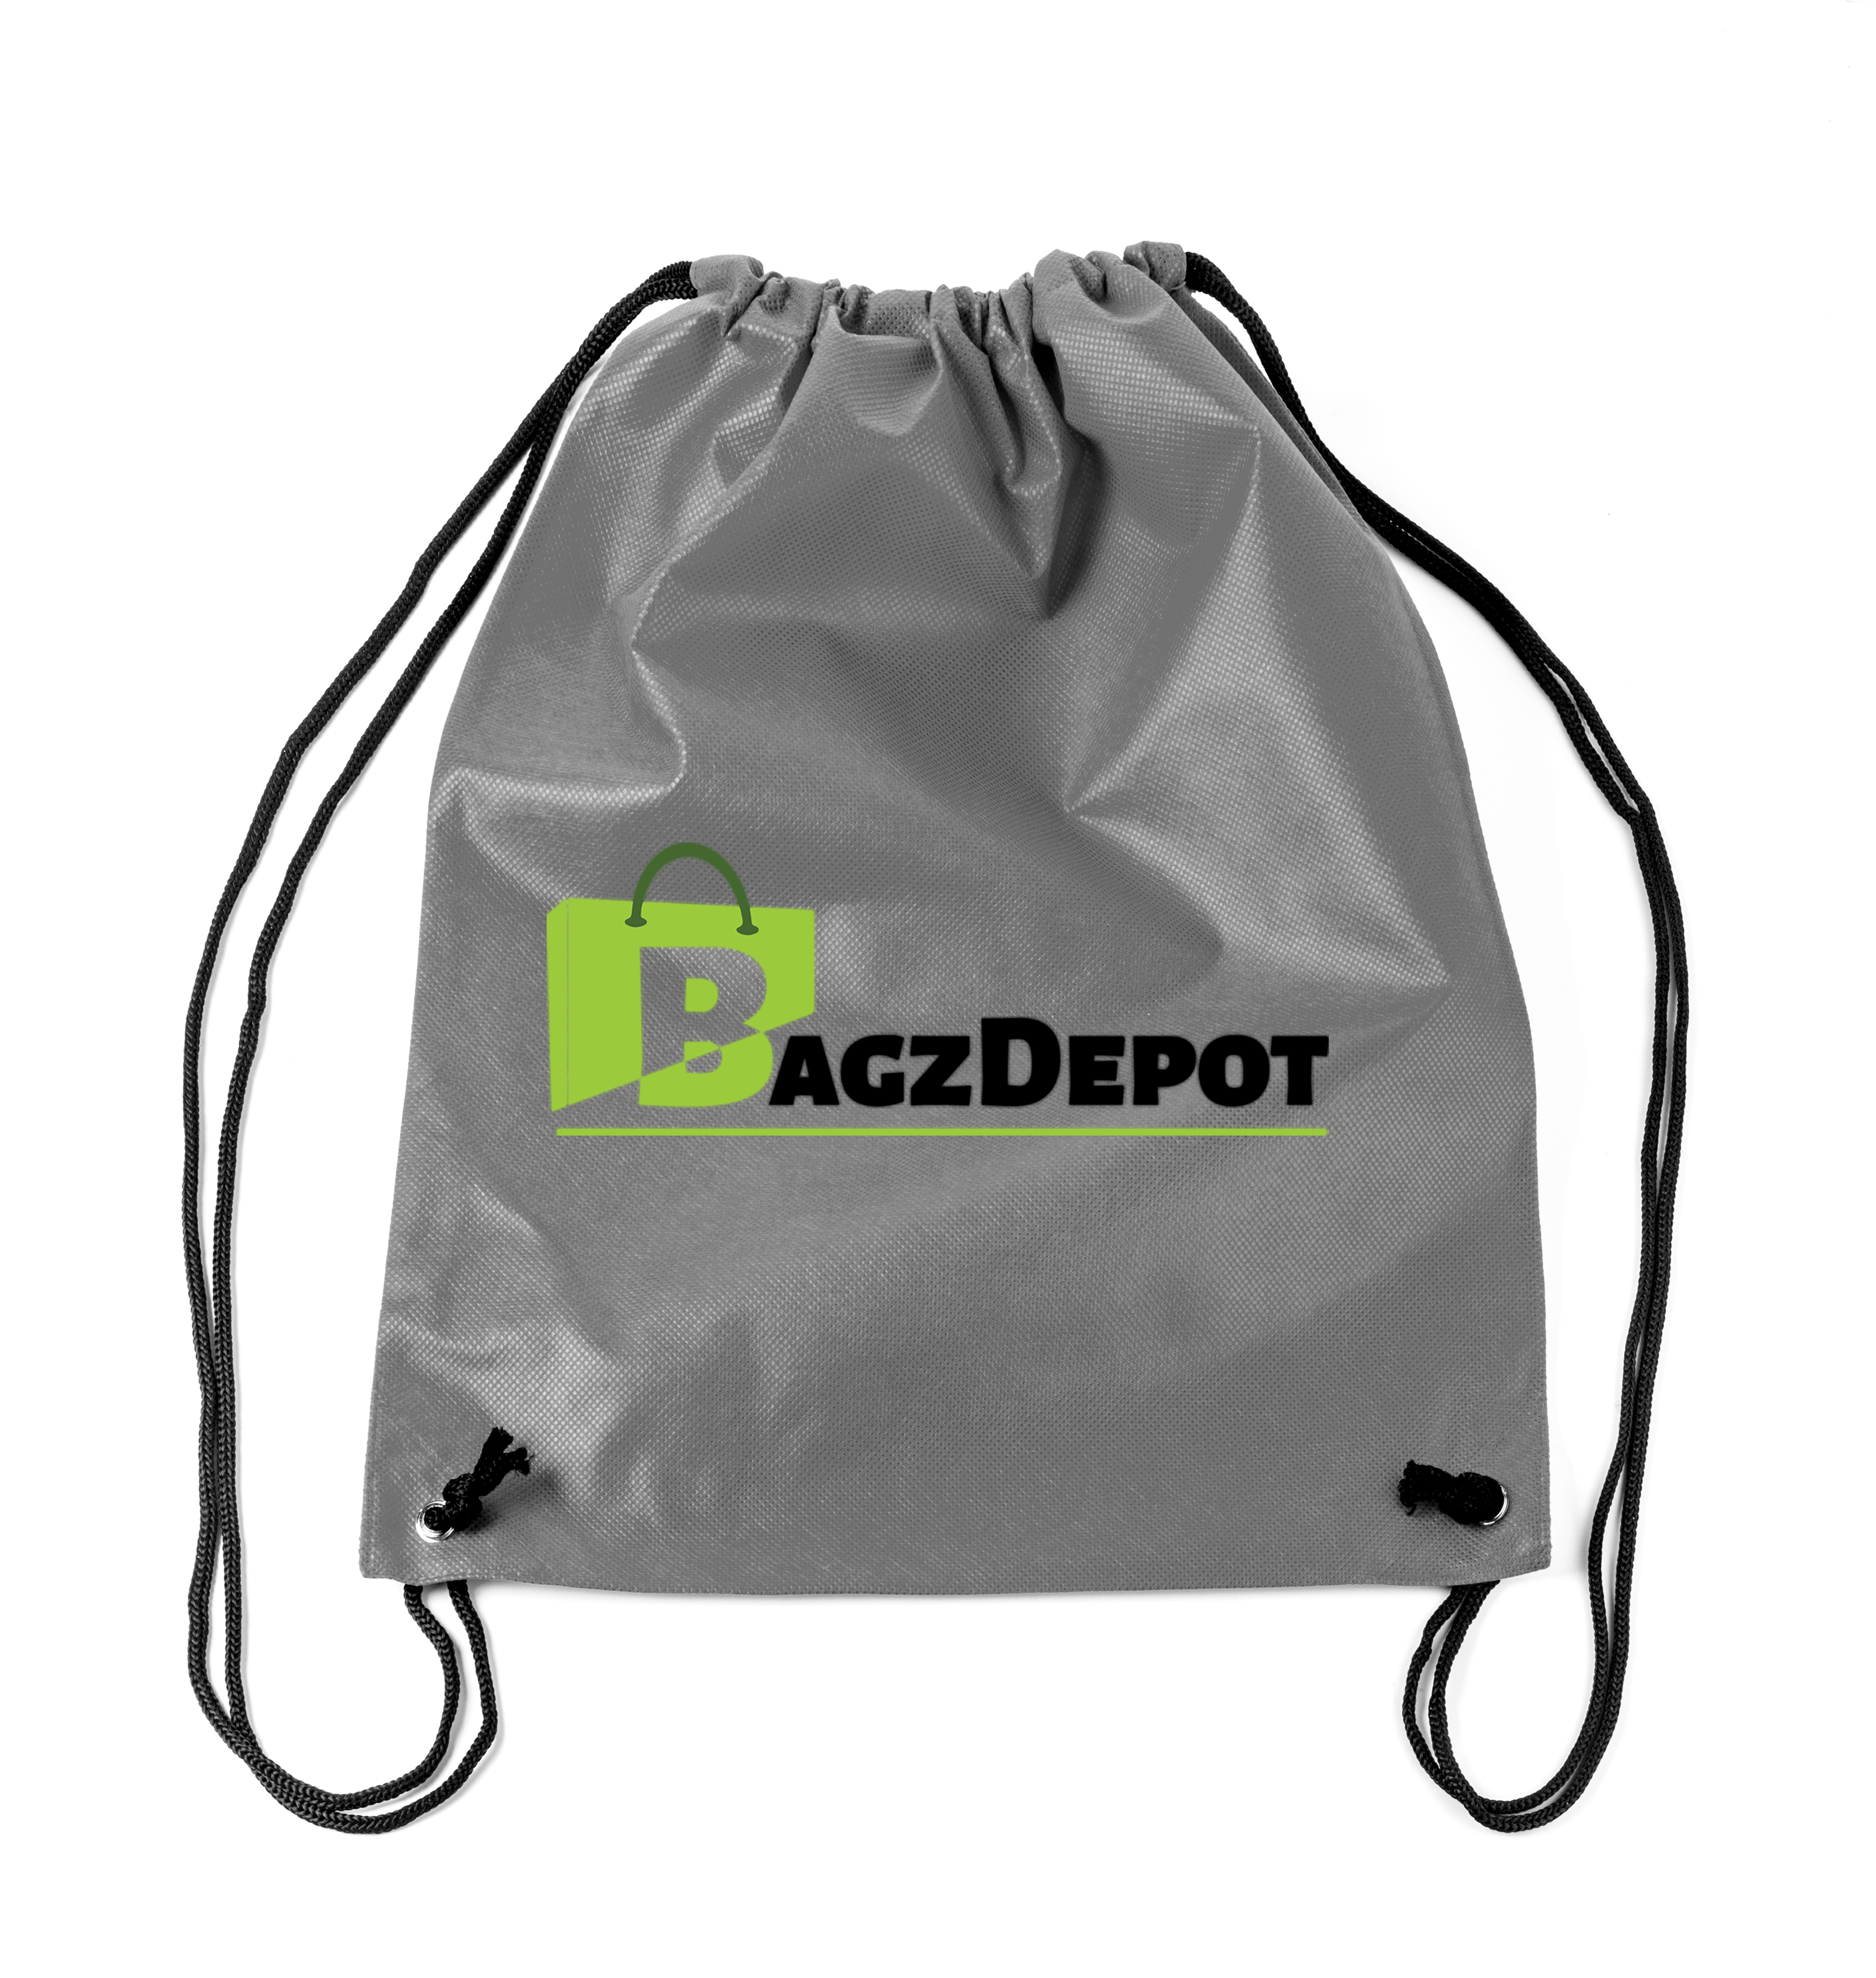 5 Ways to Publicize Your Business With Promotional Drawstring Bags